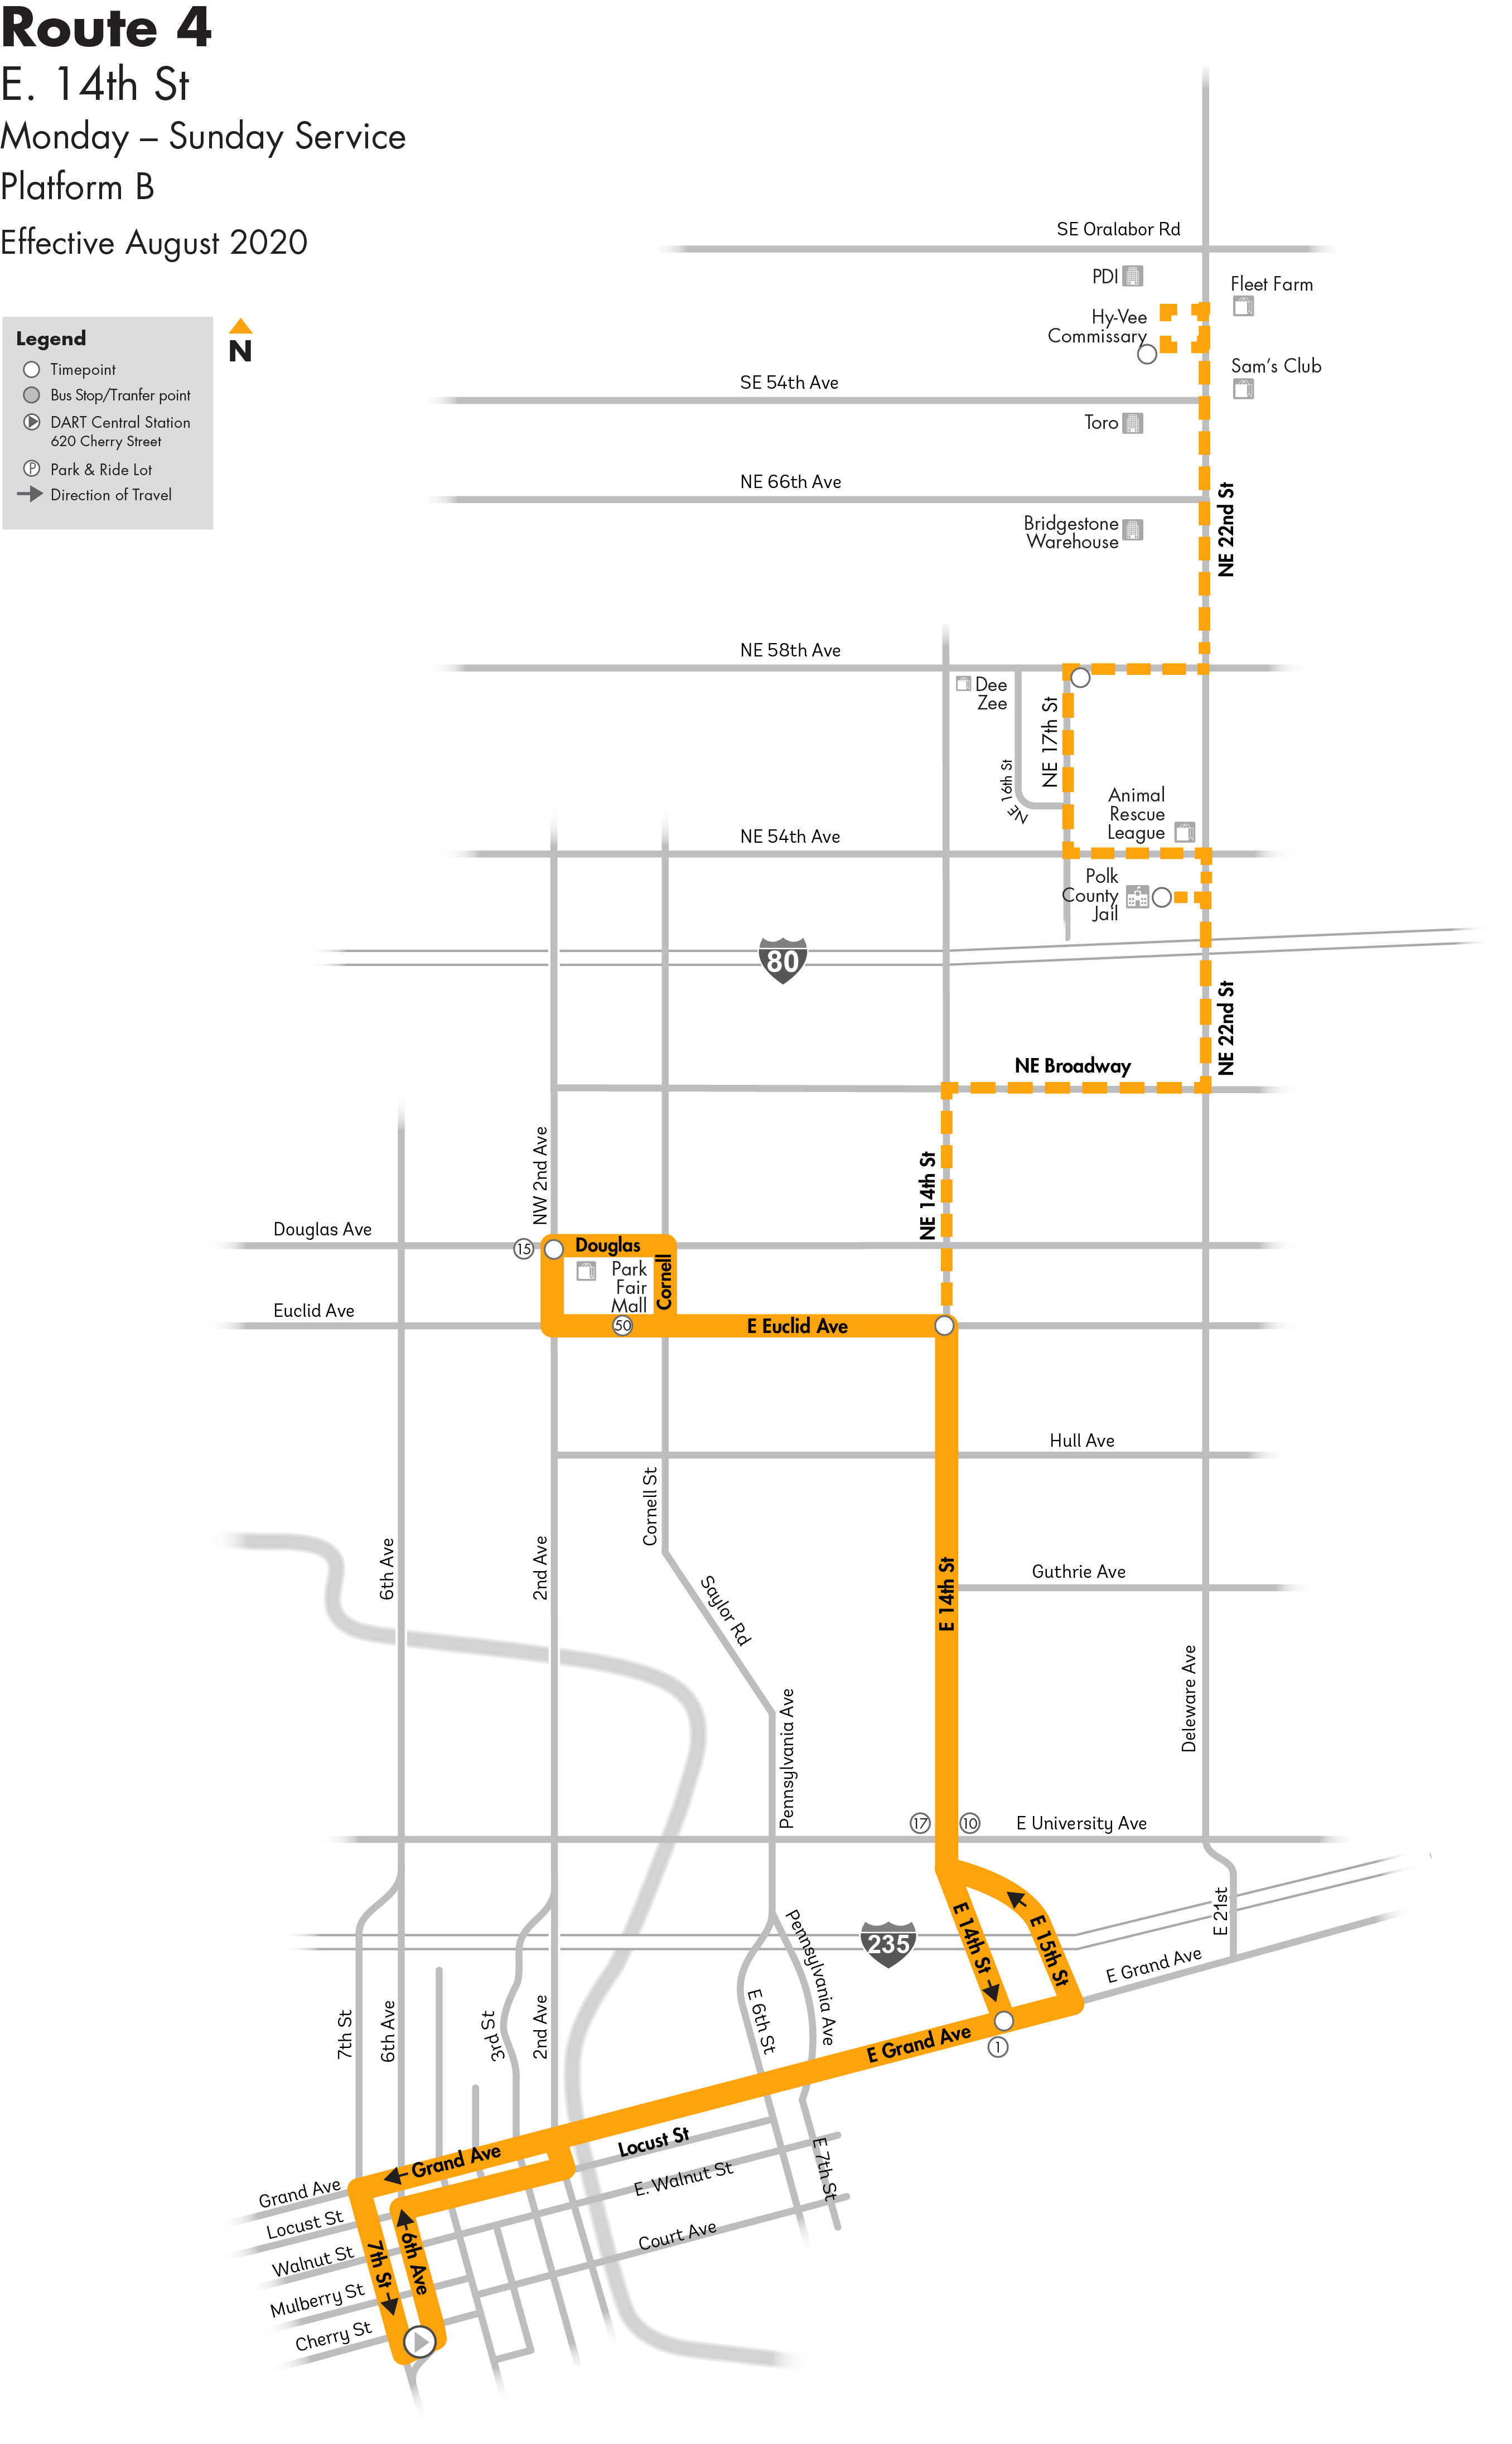 DART Local Route 4 - E 14th St Map